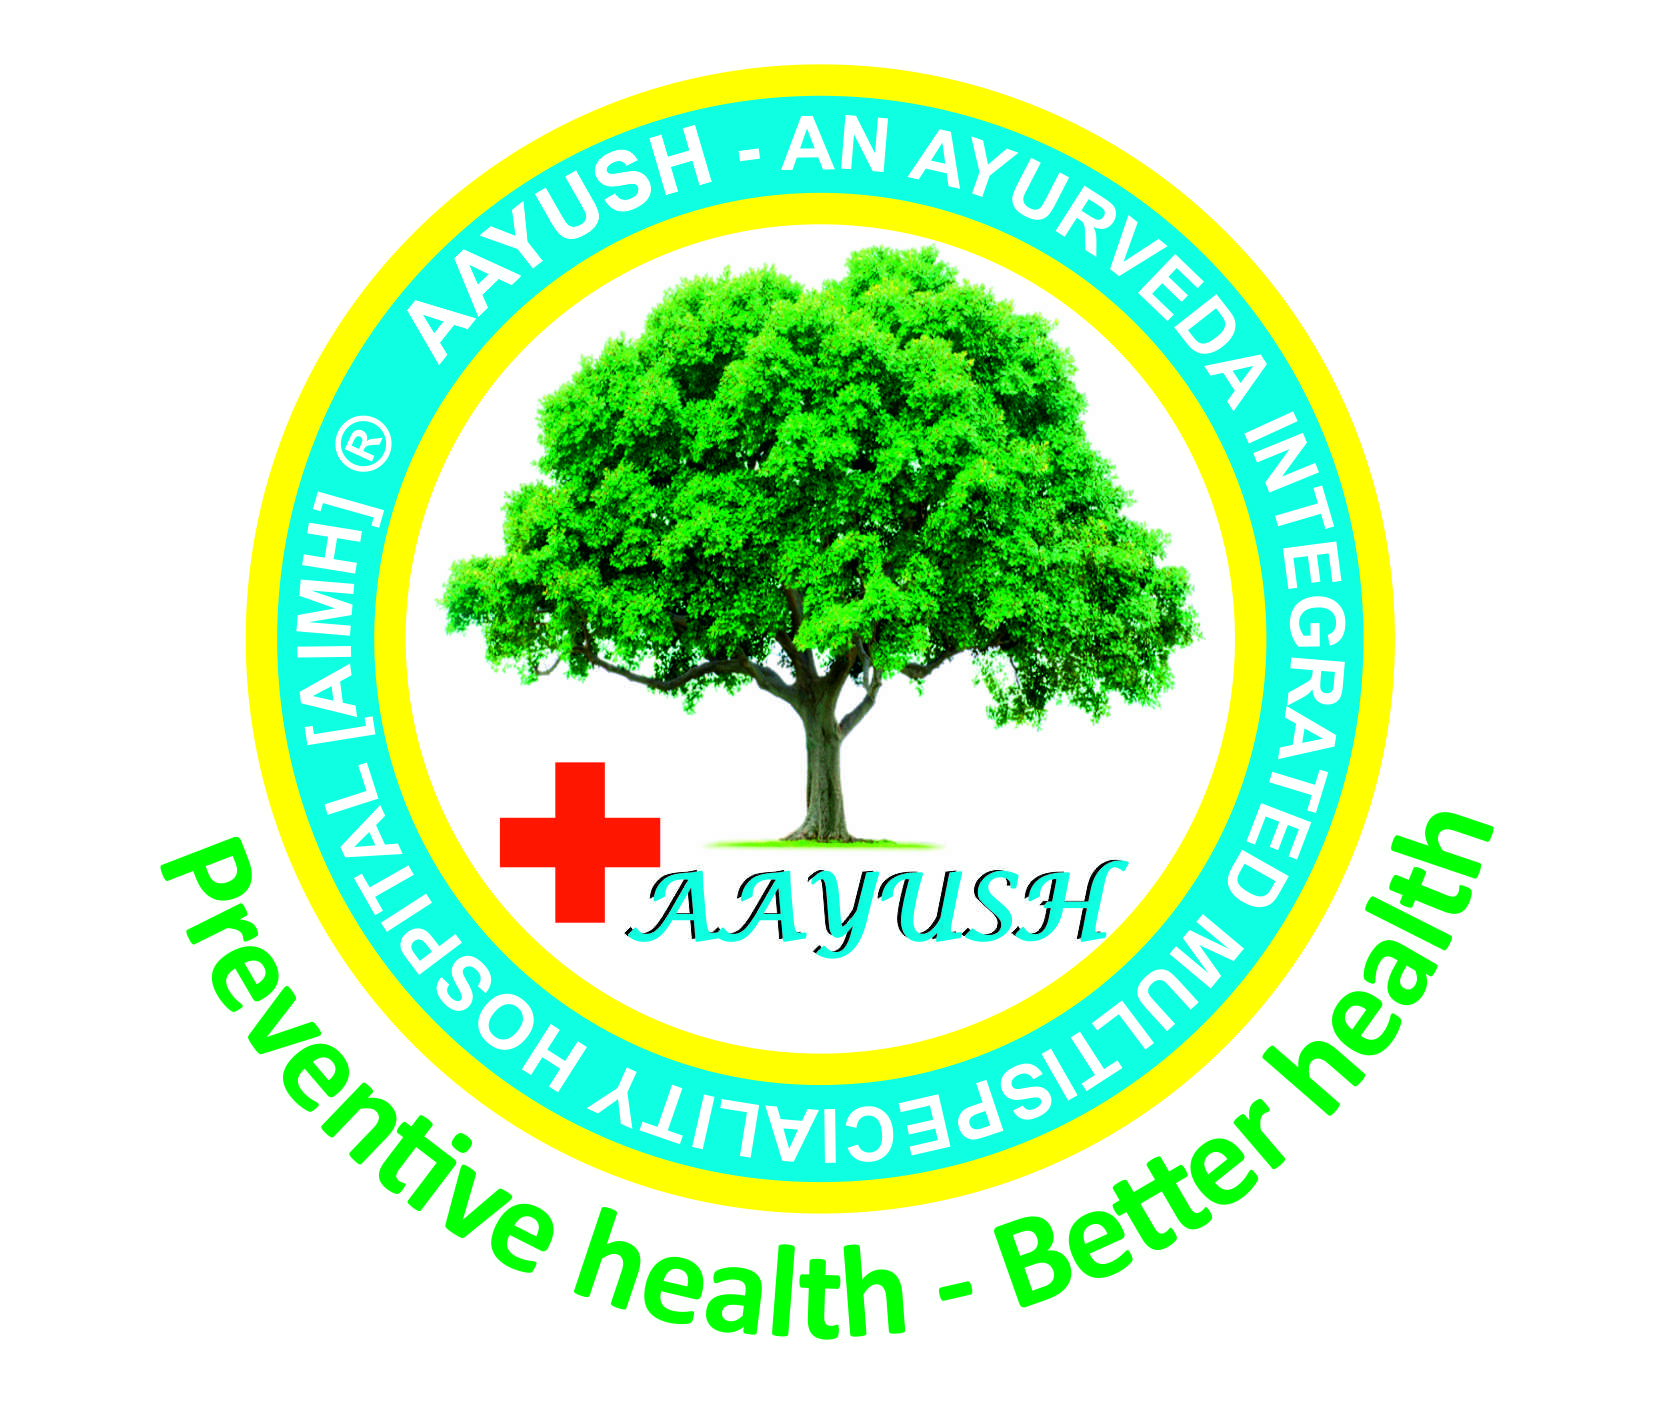 Aayush - An Ayurveda Integrated Multispeciality Hospital